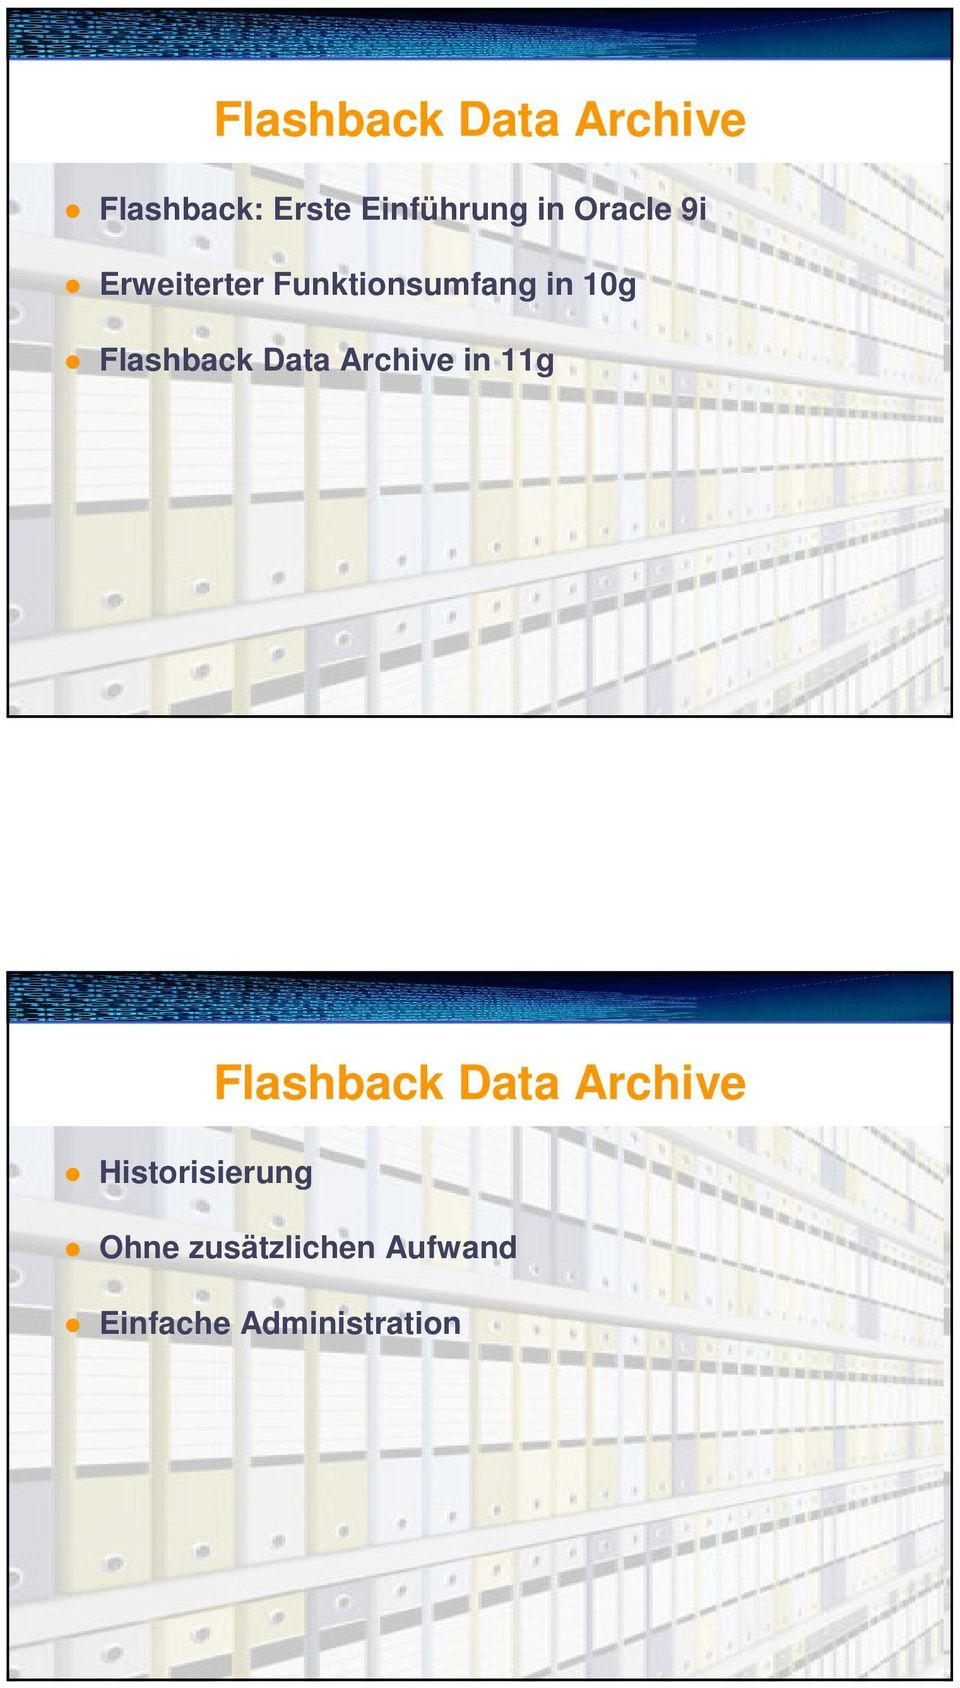 Data Archive in 11g Seite 31 Flashback Data Archive